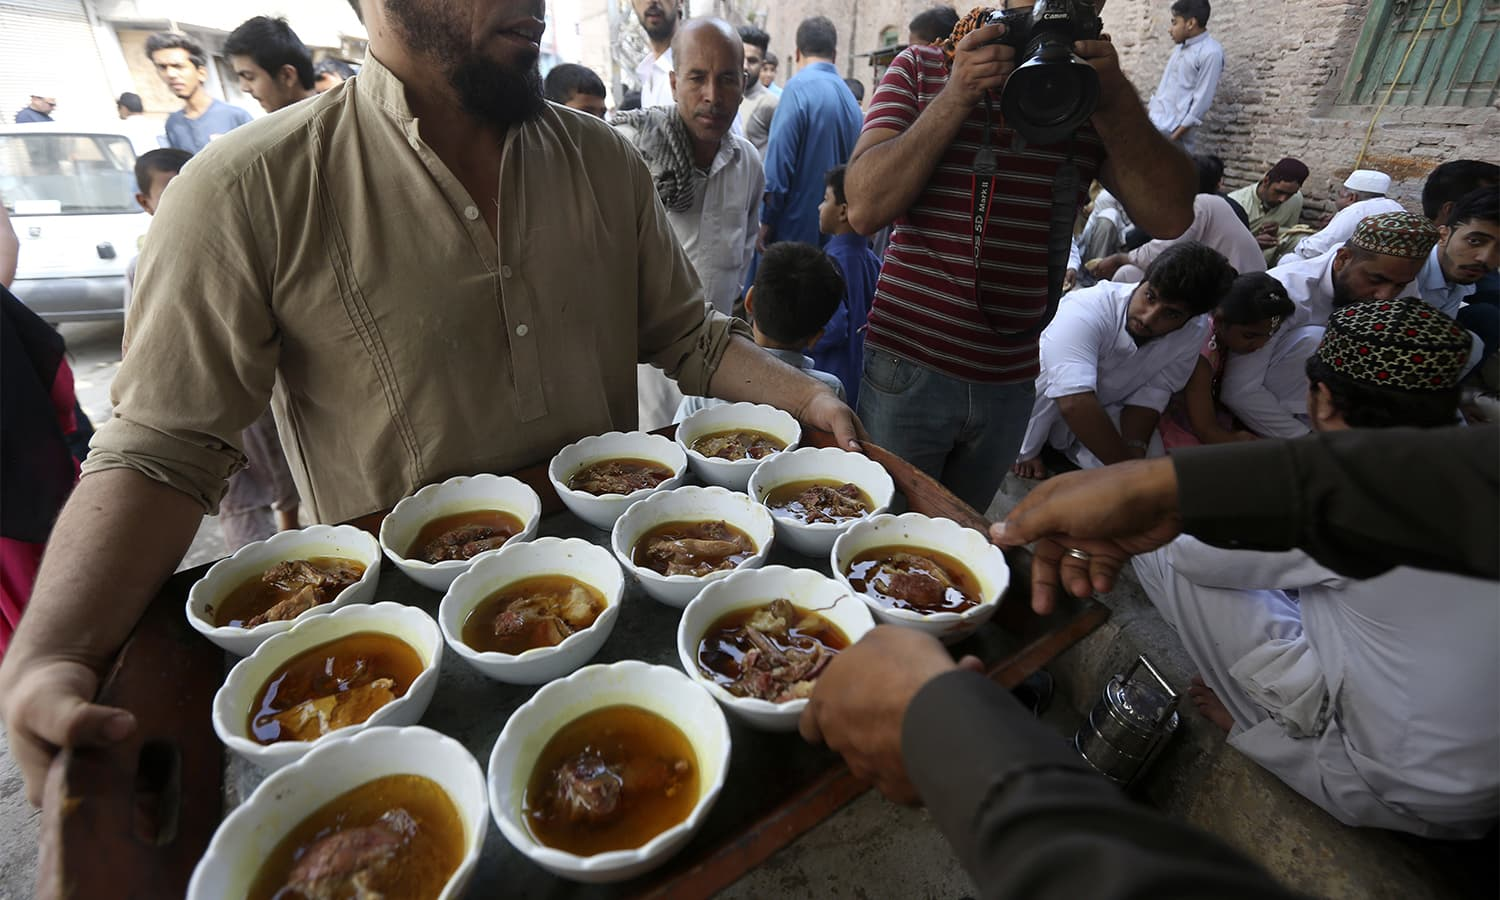 A man distributes food to people in Karachi on the first day of Eidul Azha.—AP